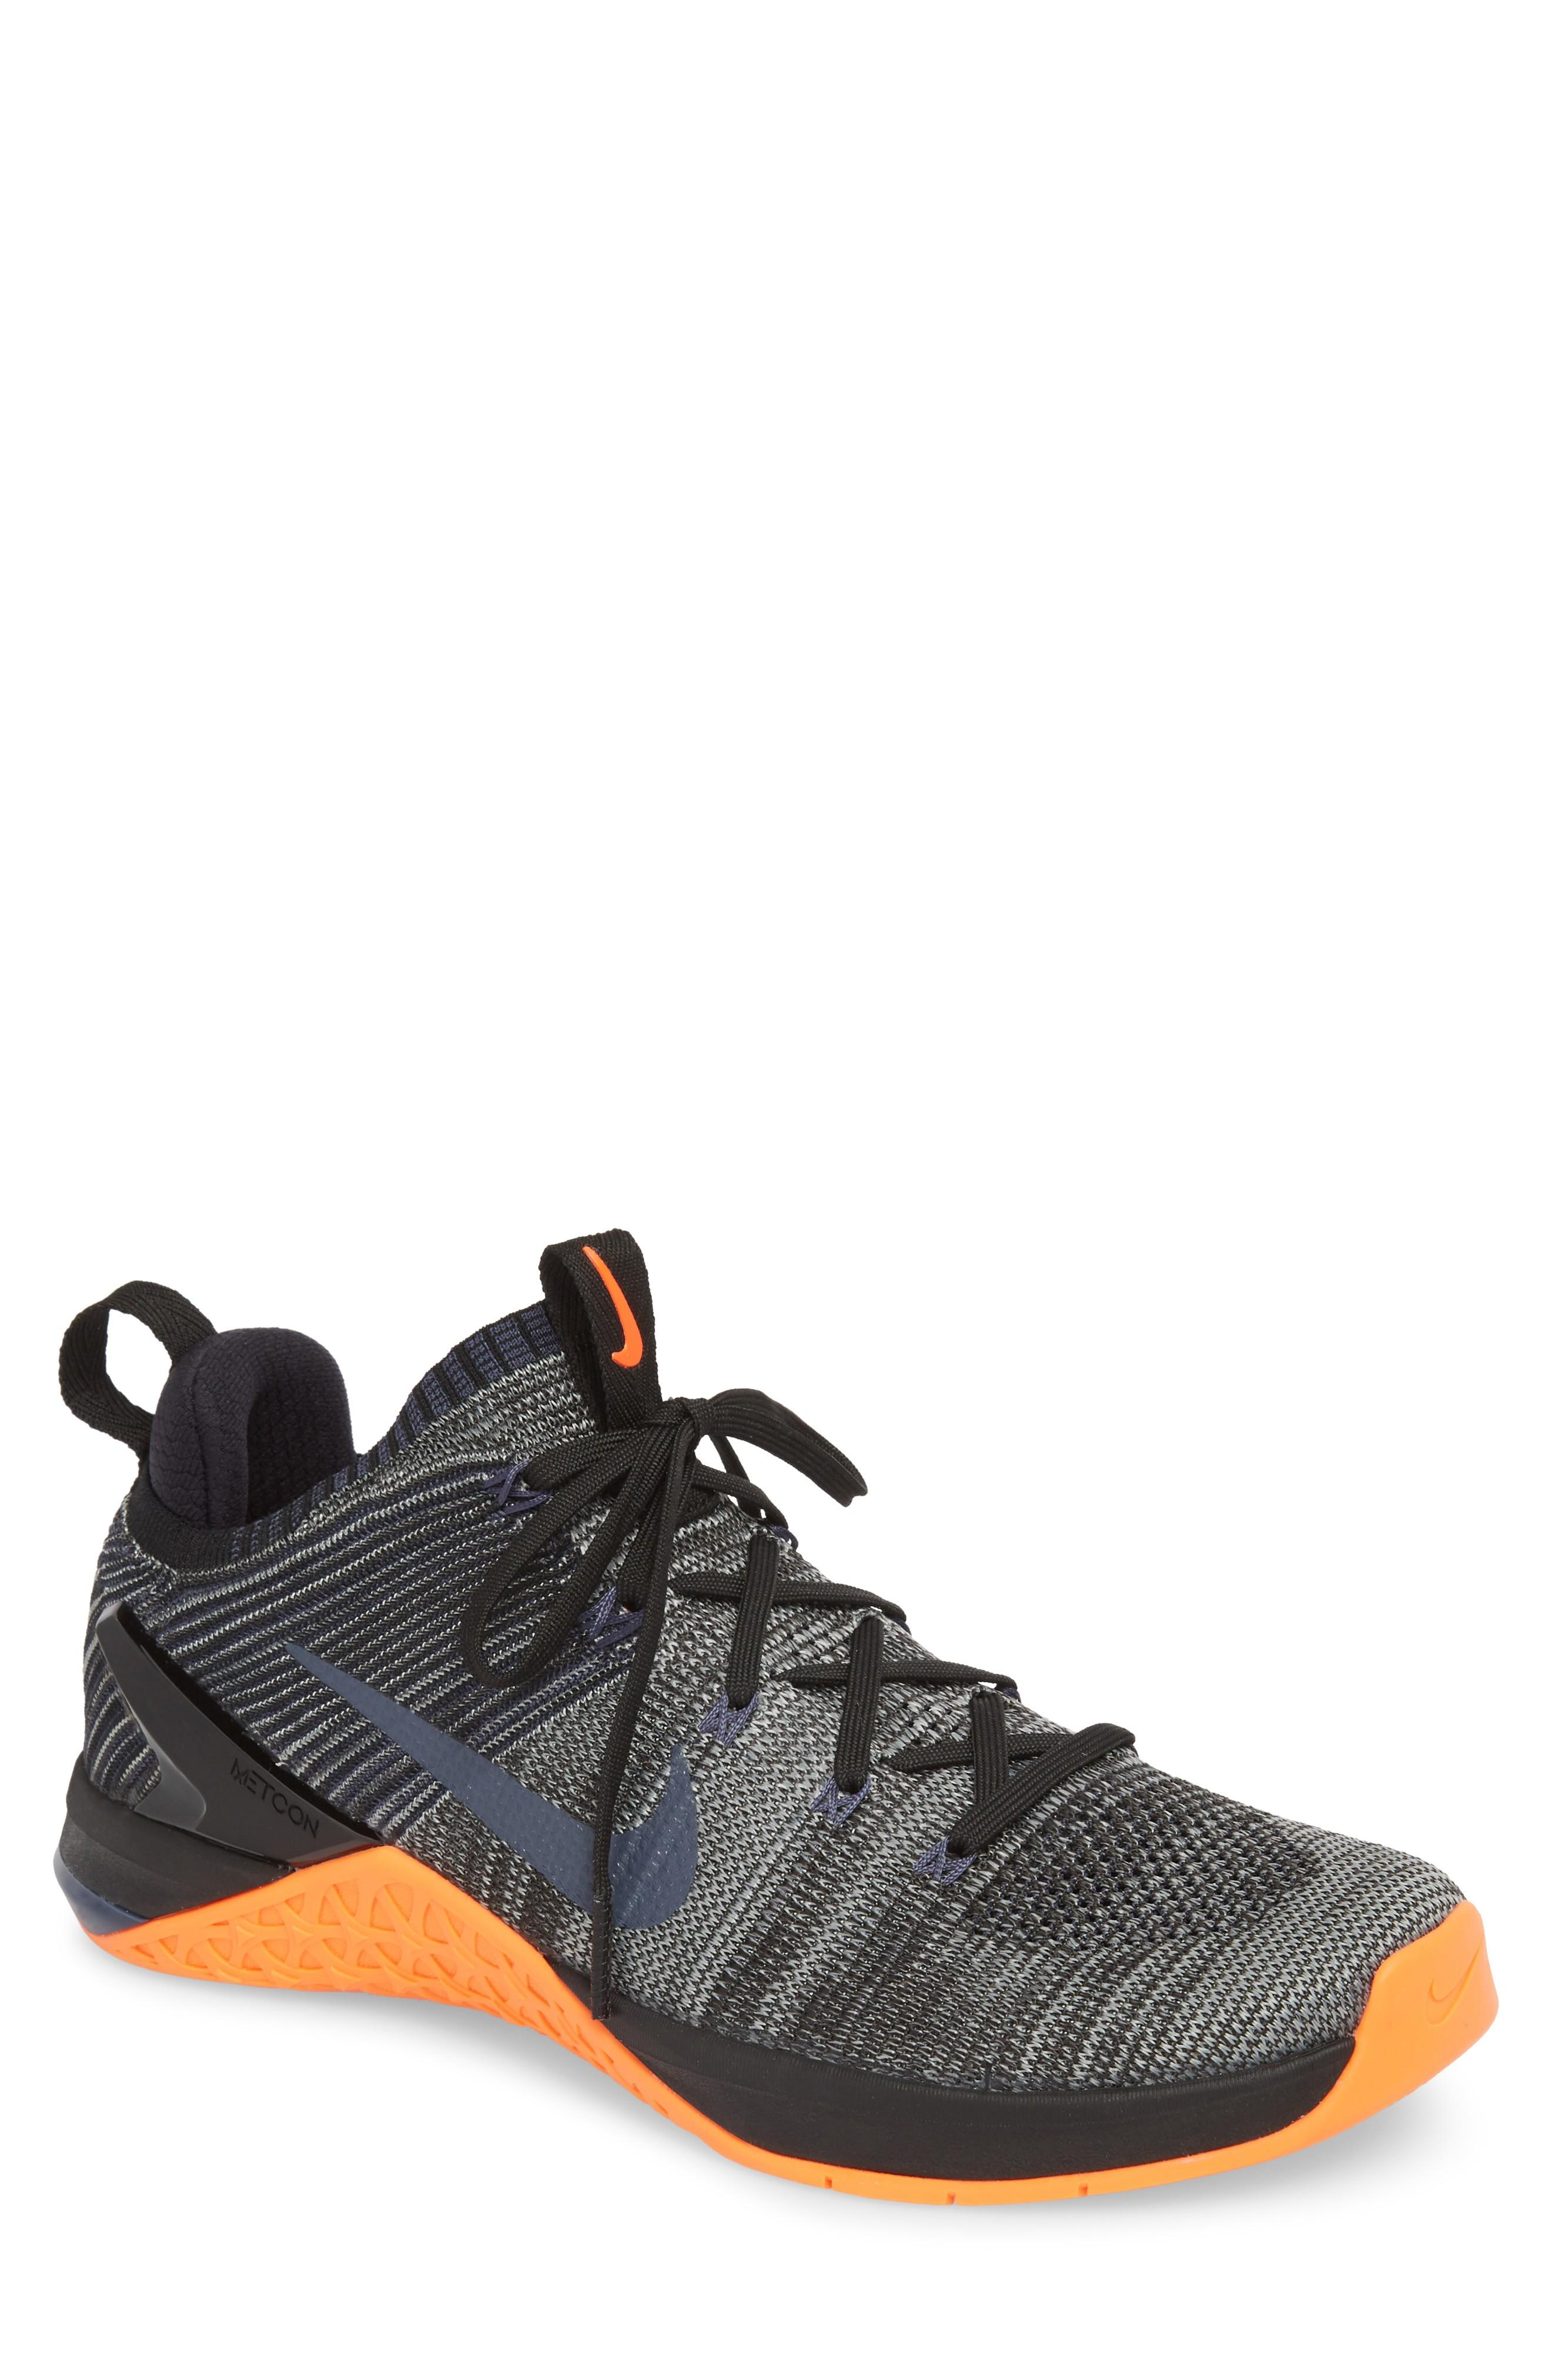 4b2c56748be7 Nike Metcon Dsx Flyknit 2 Training Shoe In Black  Thunder Blue  Crimson